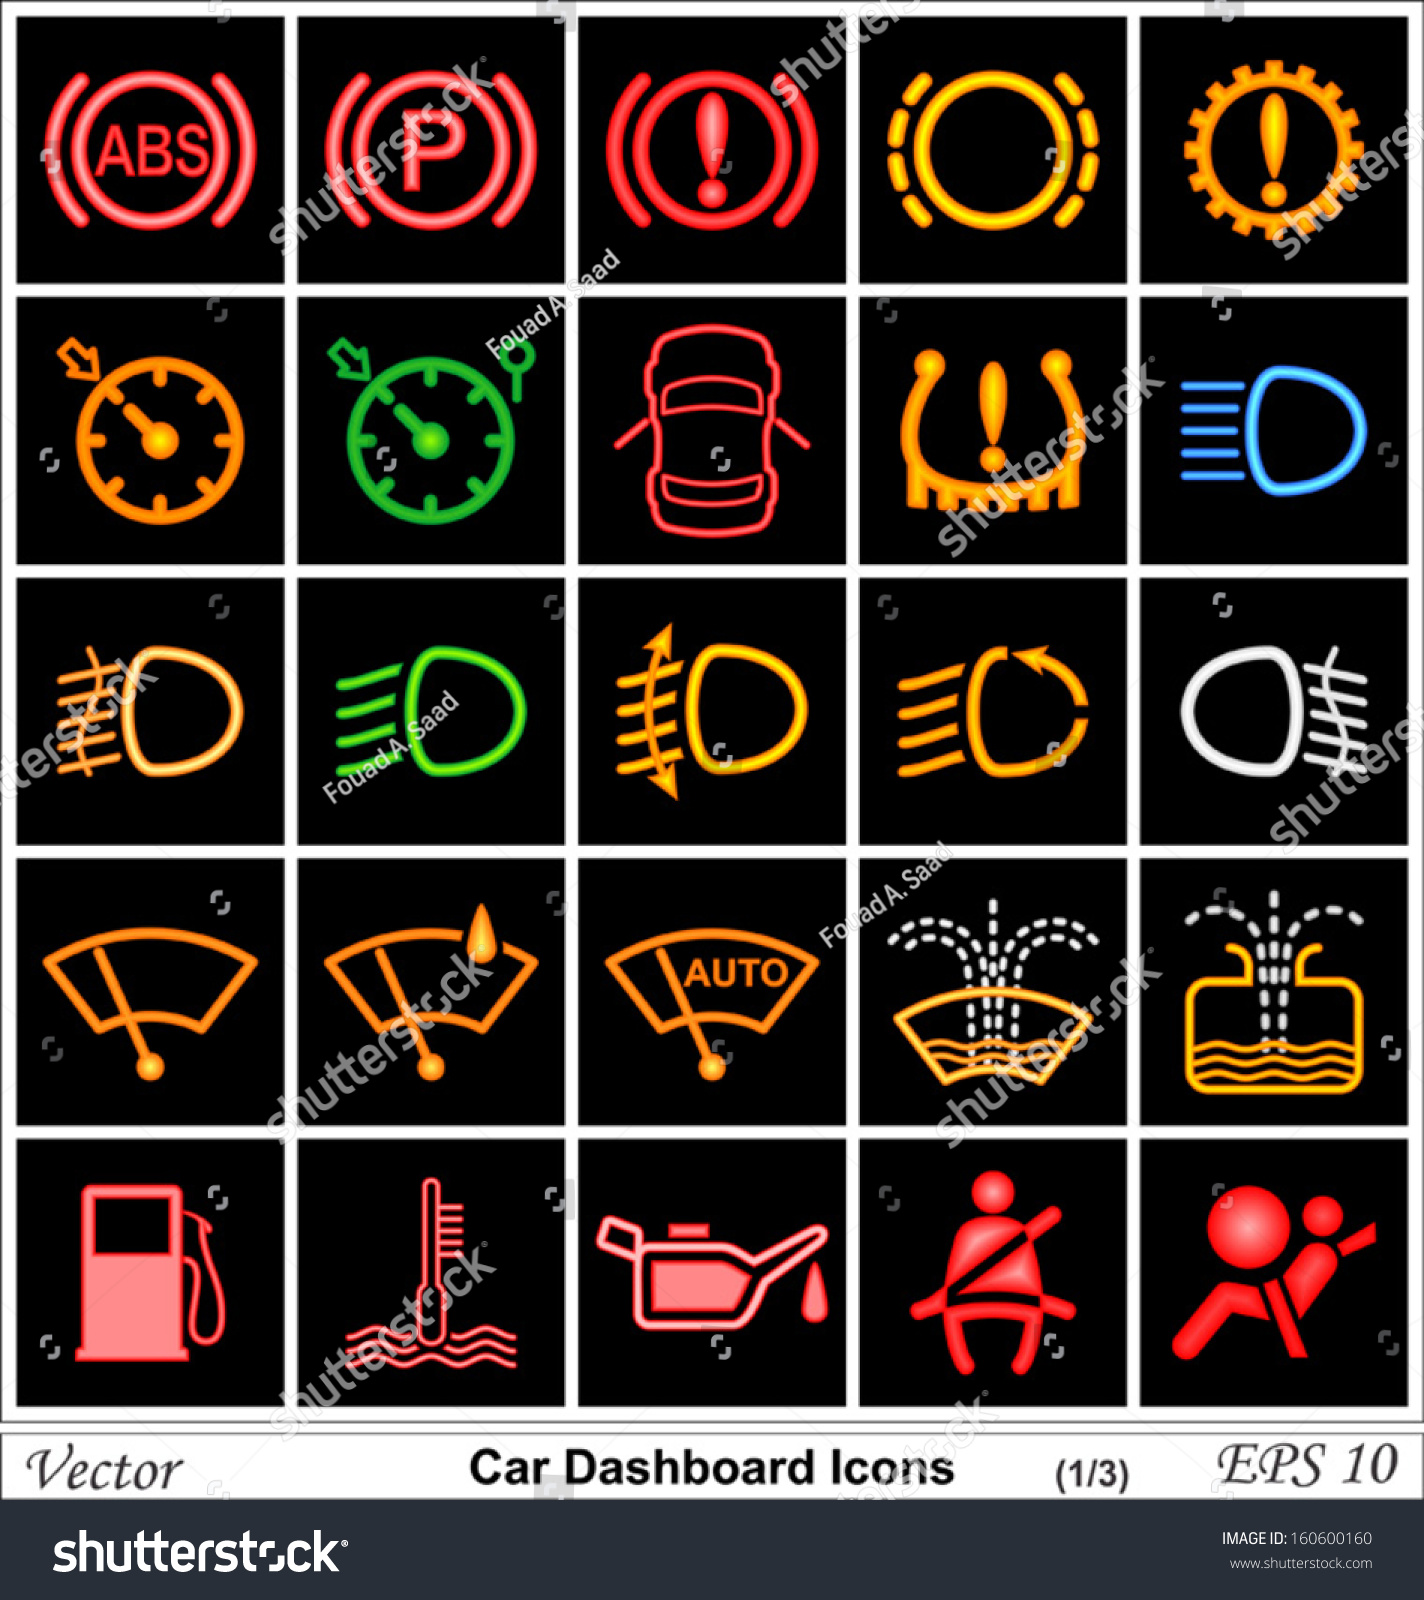 Car Dashboard Vector Icons Stock Vector Shutterstock - Car sign on dashboard